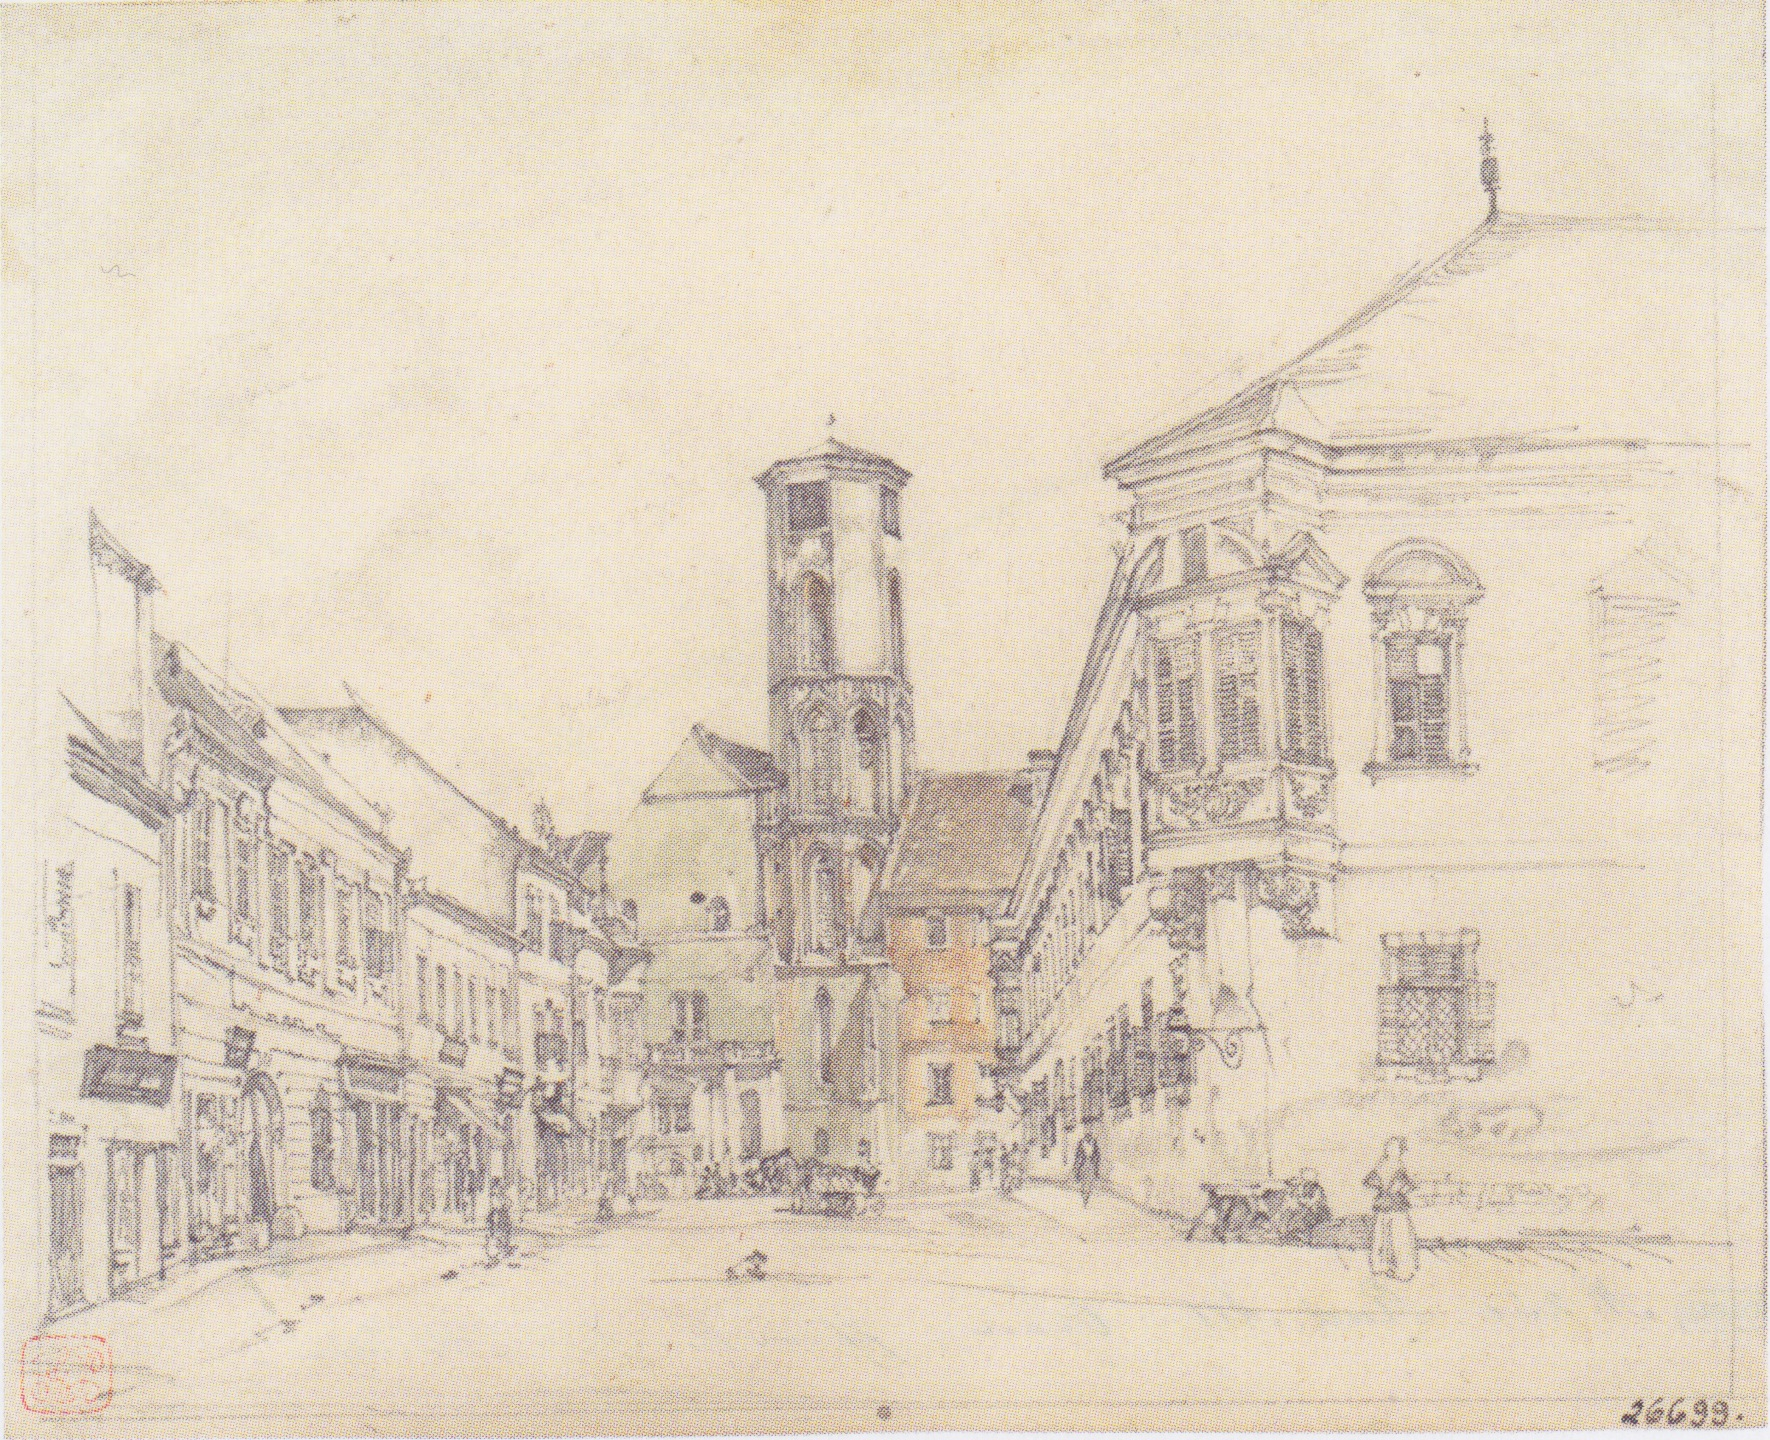 The parish church in Ofen, 1845